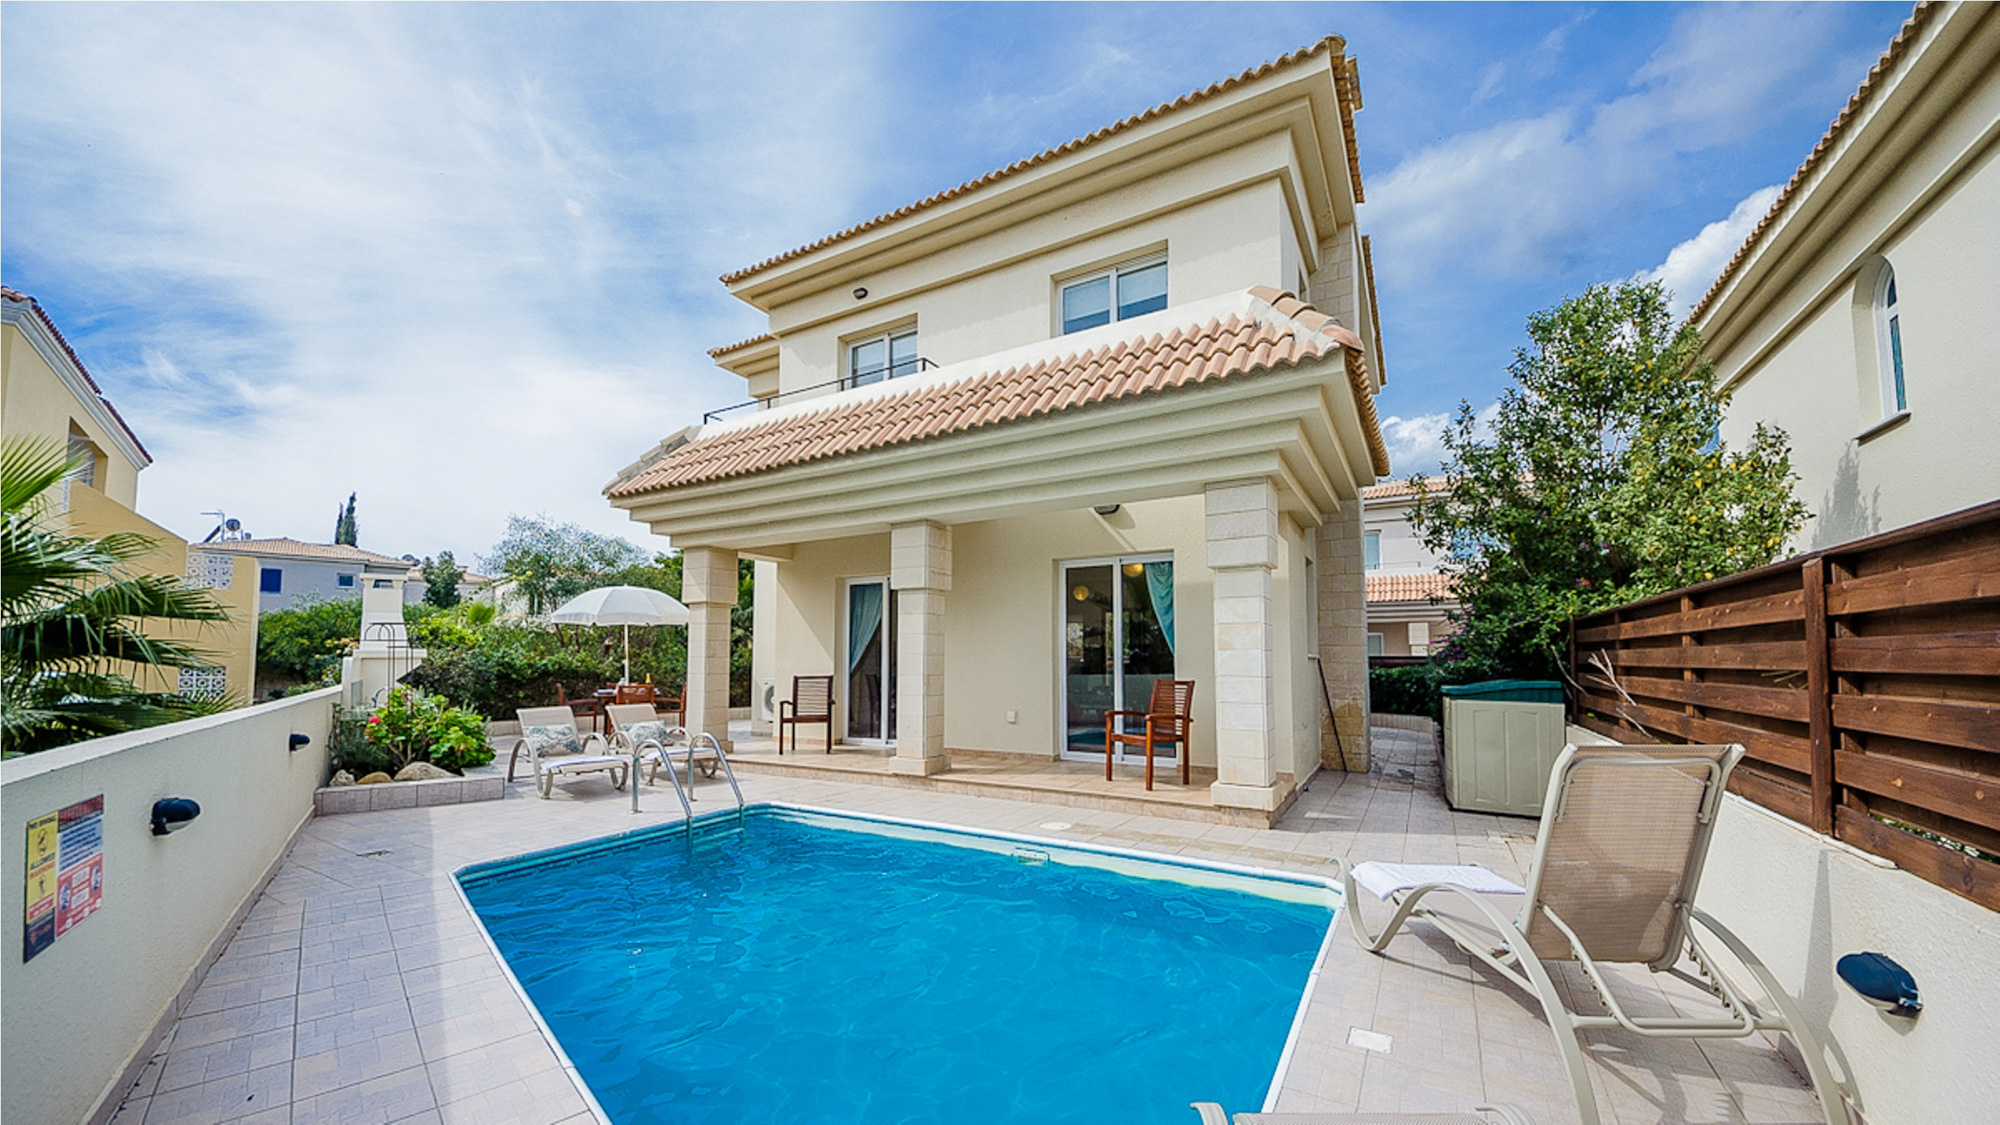 Apartment RENT your luxury PRIVATE VILLA 164 in Cyprus photo 23805718